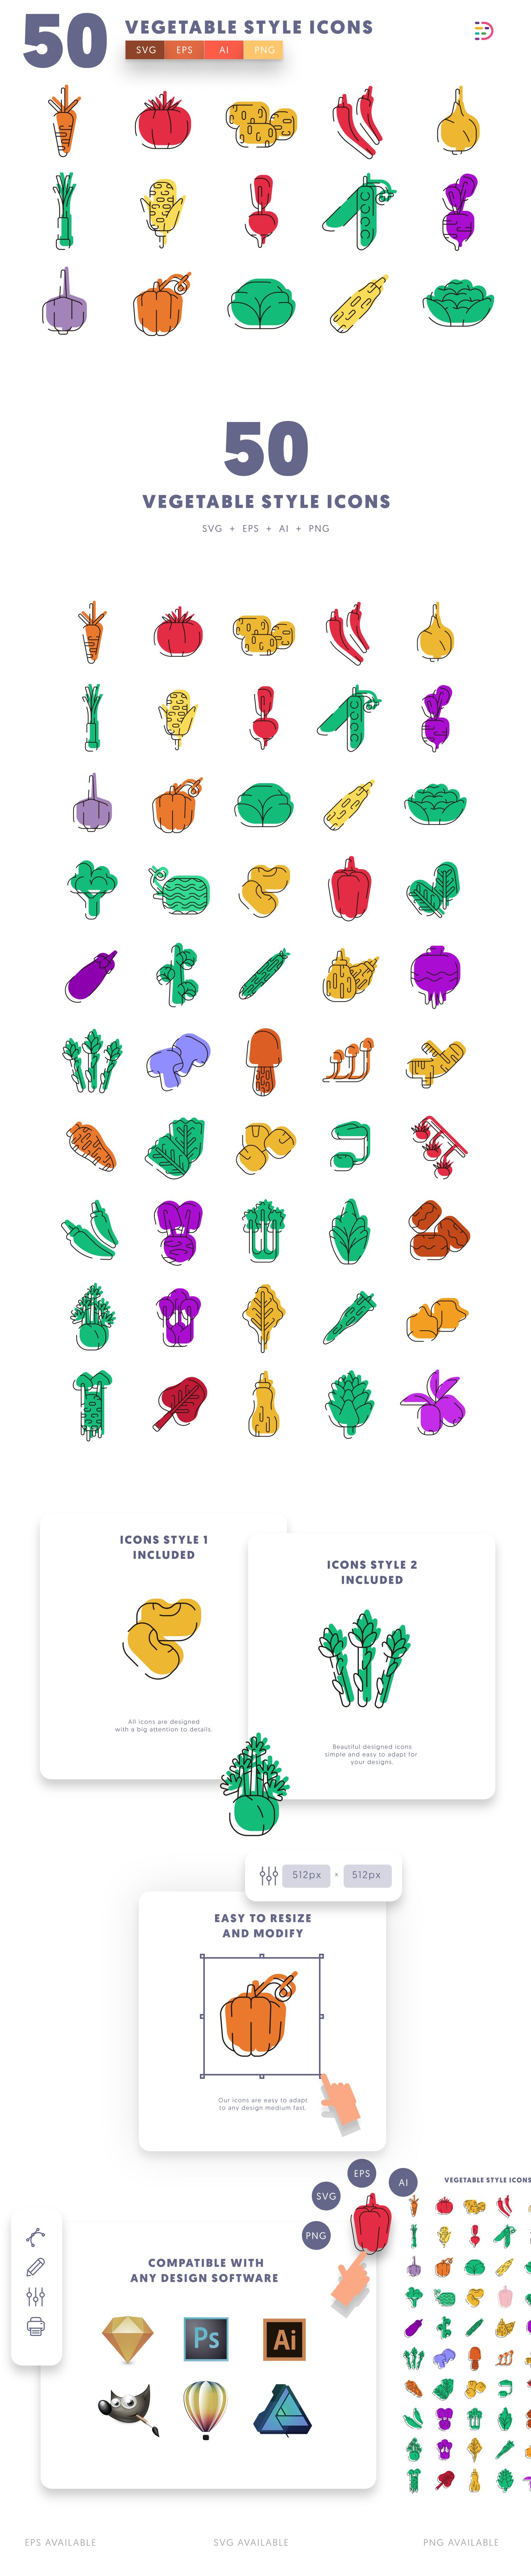 Vegetable Style icons info graphic